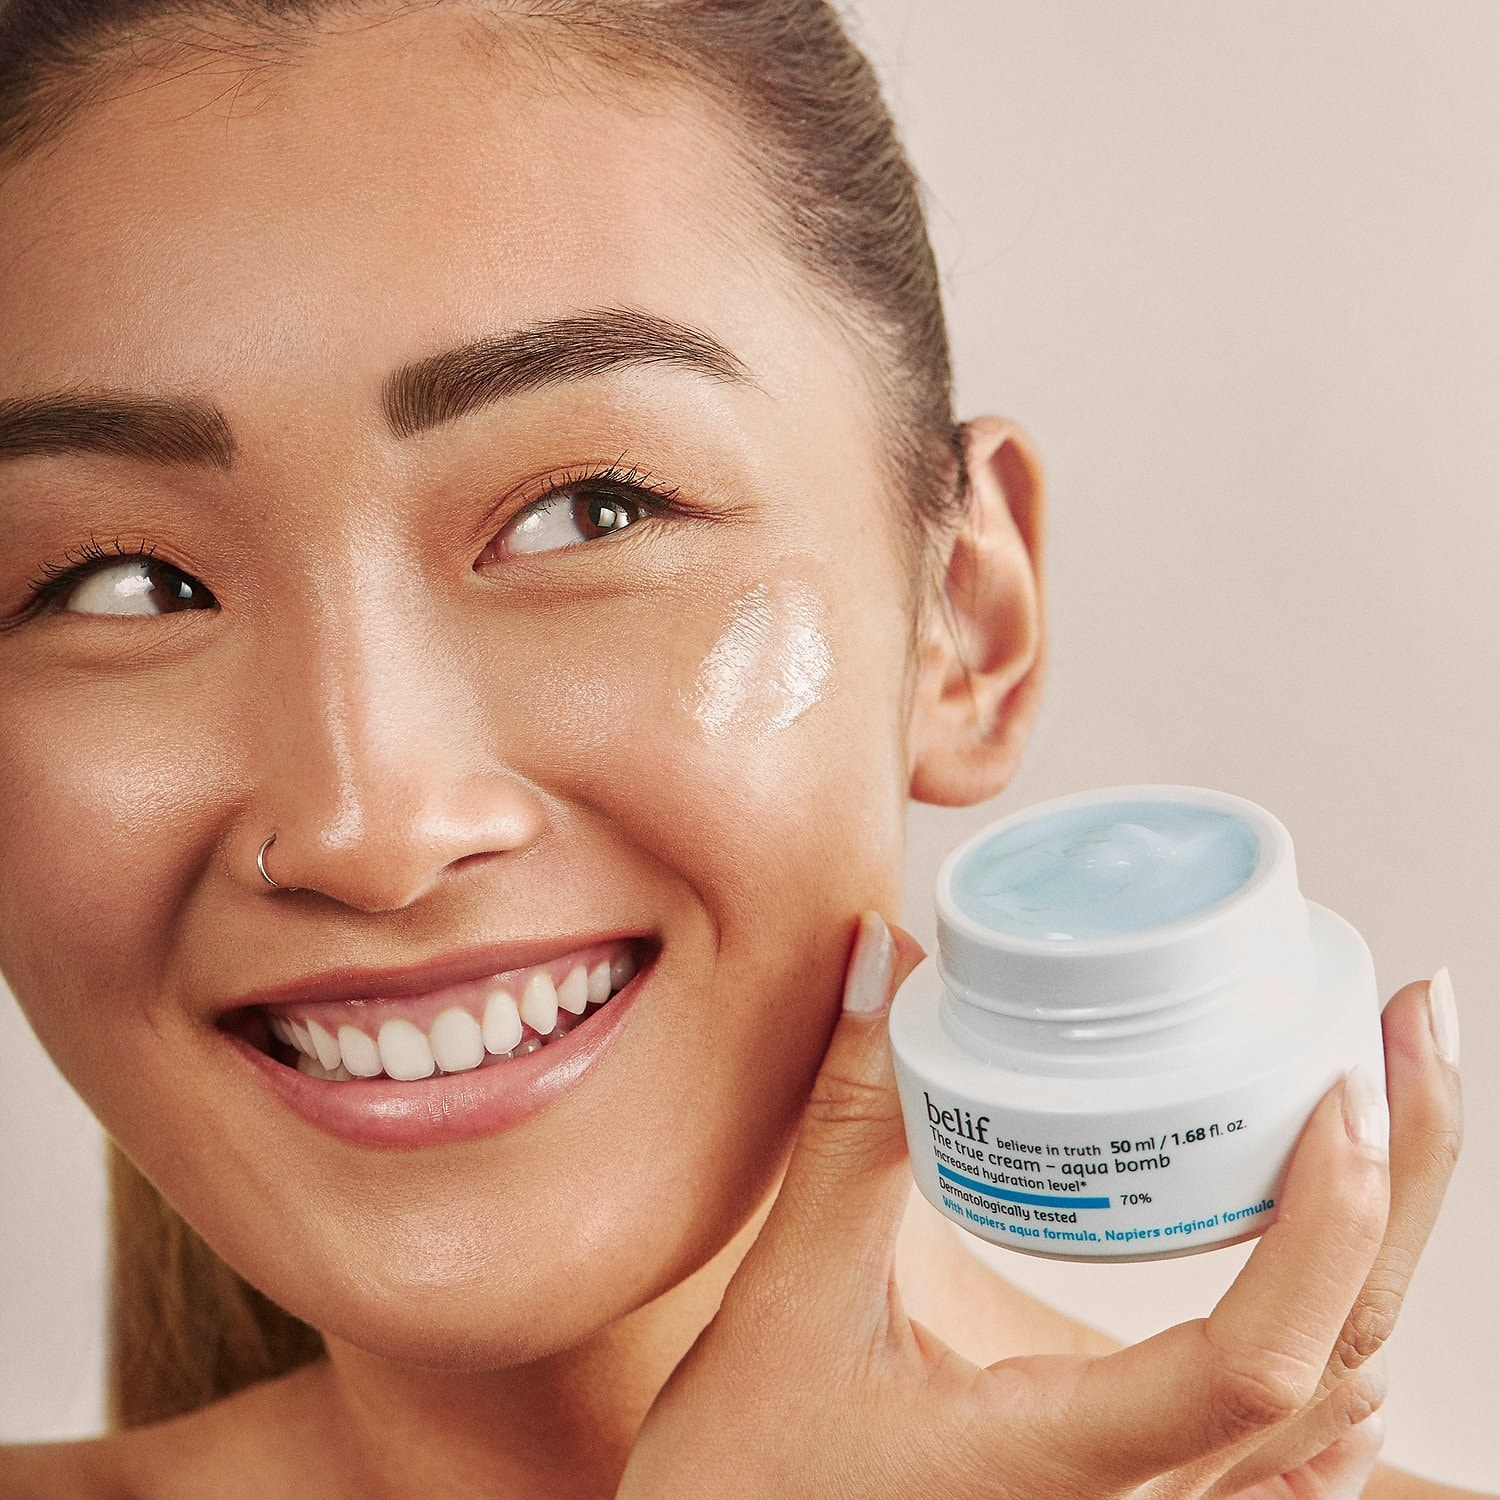 a model holding the cream